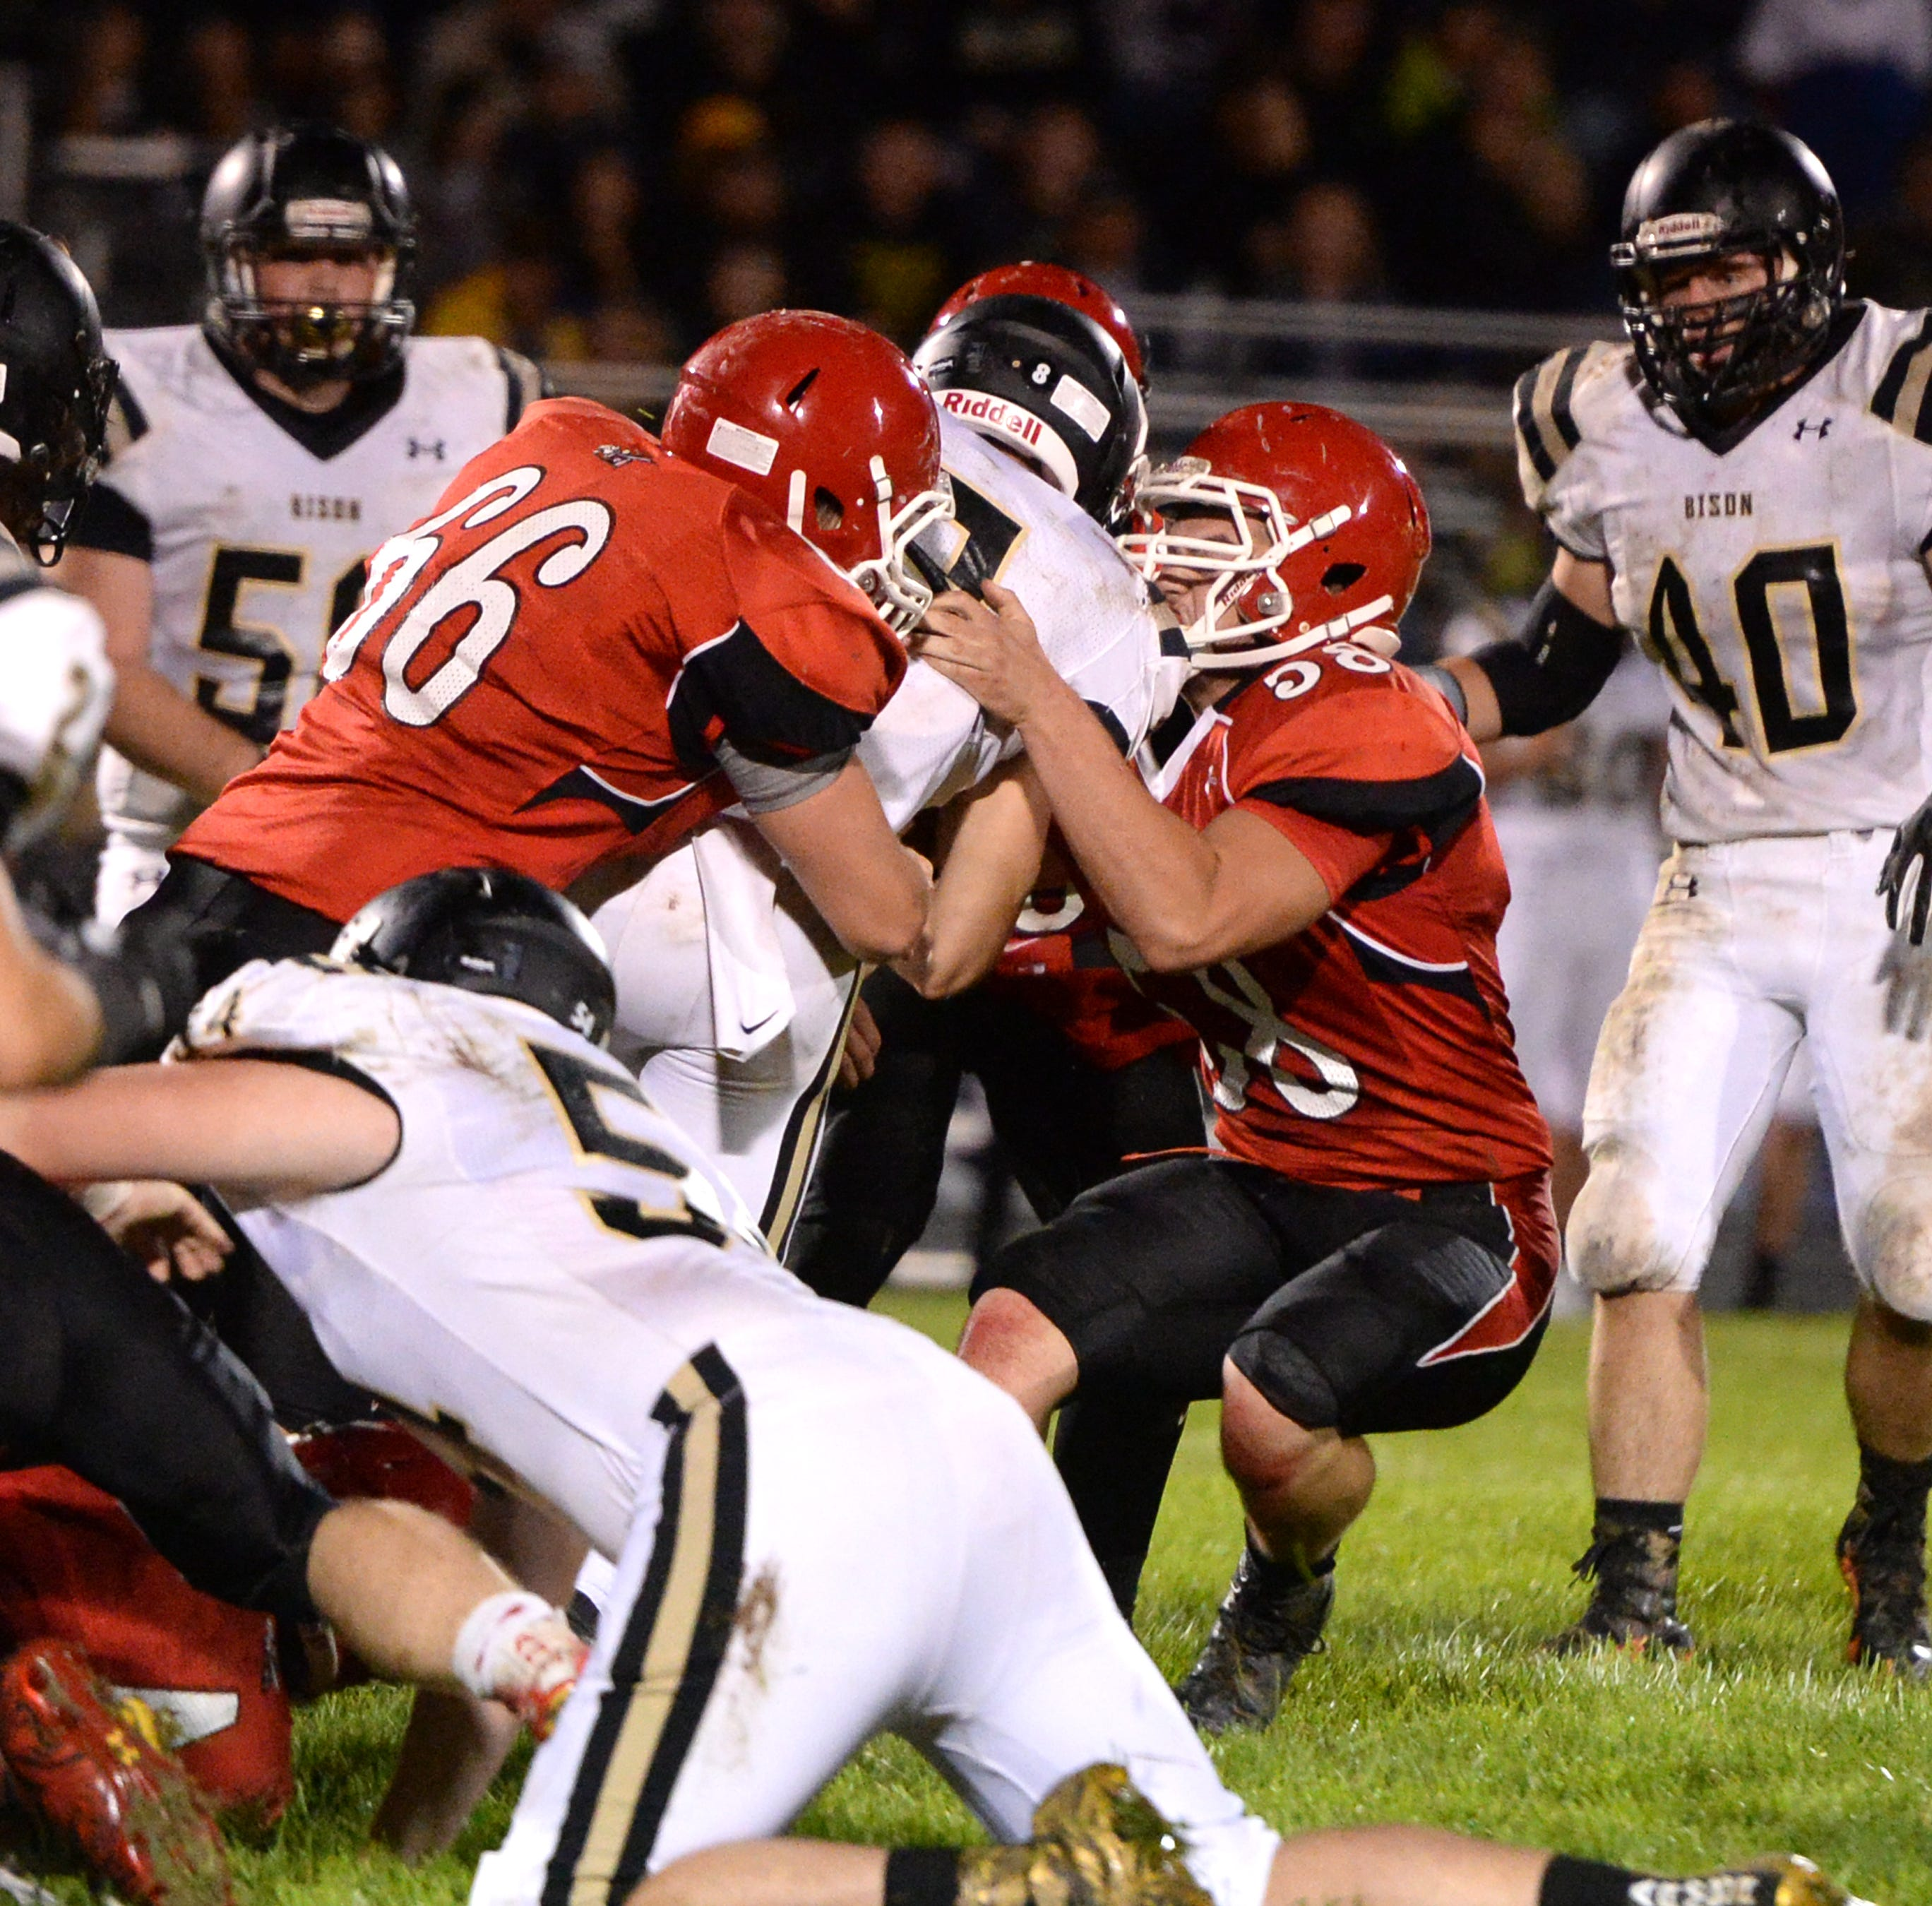 Riverheads' defense didn't make it easy for Buffalo Gap's Carter Rivenburg Saturday night.